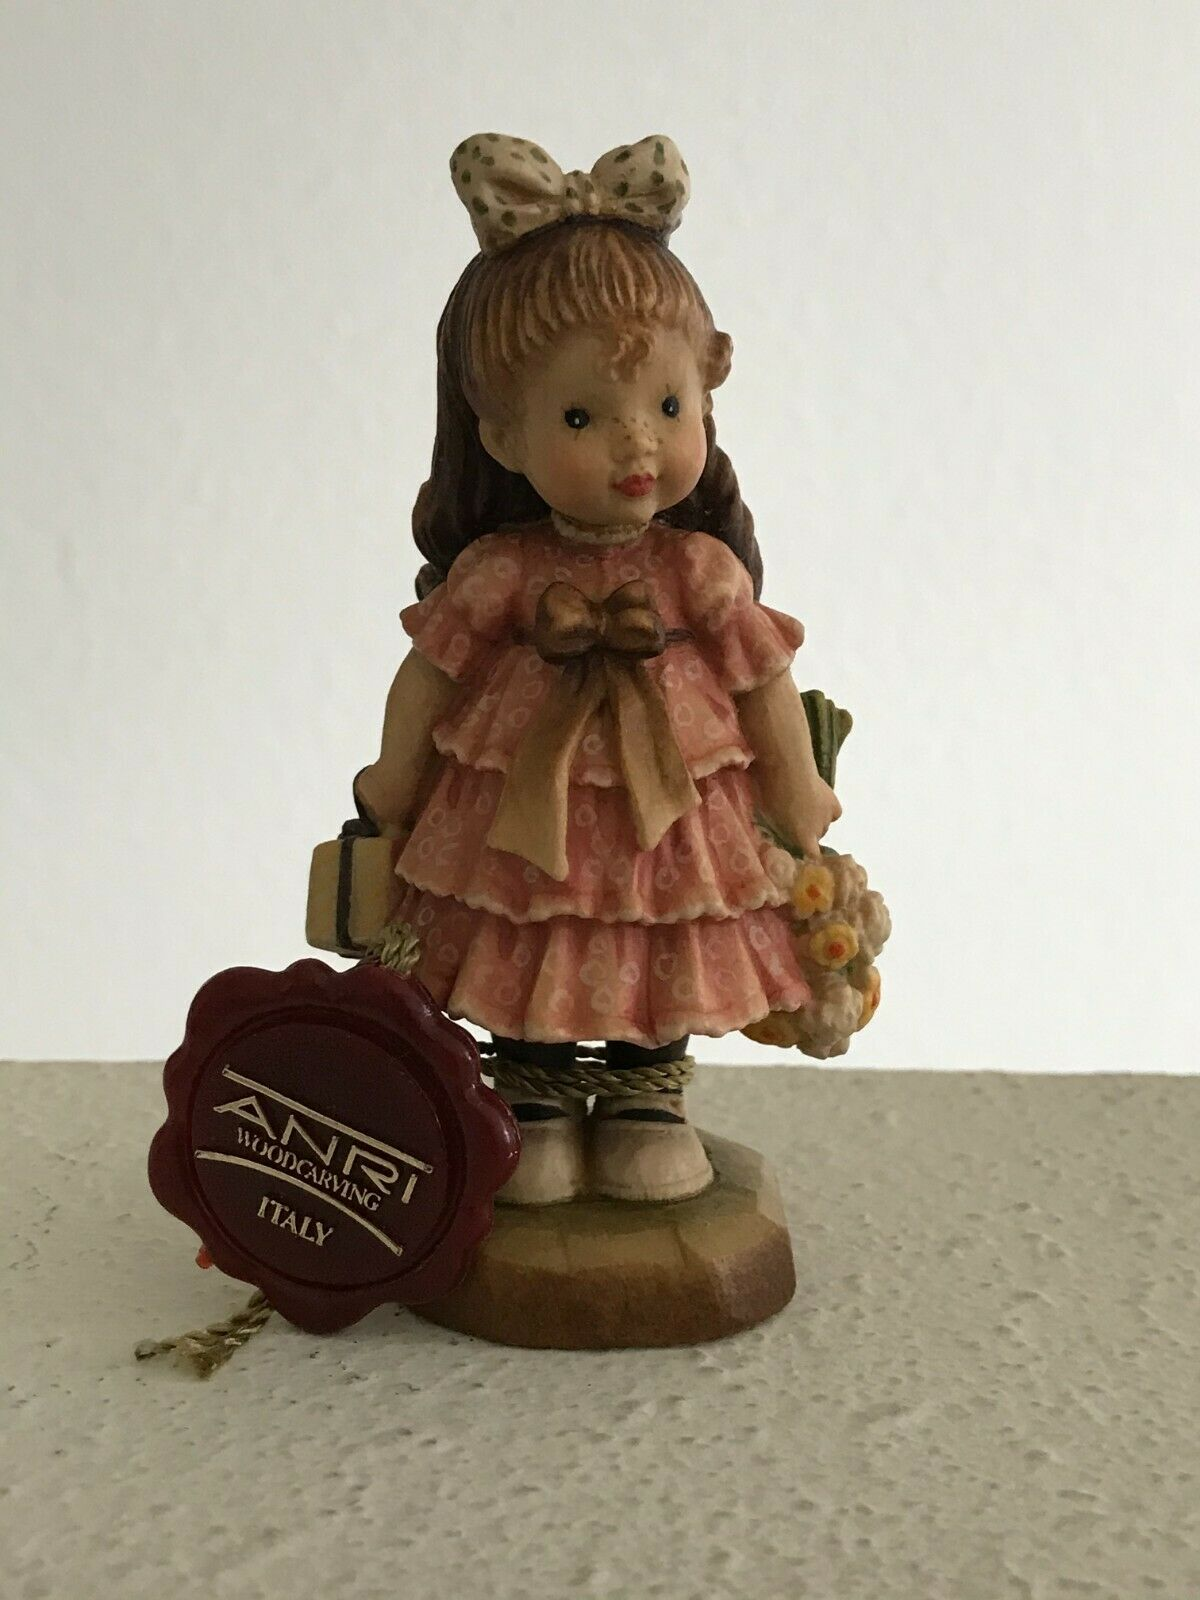 Anri Sarah Kay Valentine 4 Wood Sculpted Figurine Special Day Ltd Edt 126/4000 - $58.75